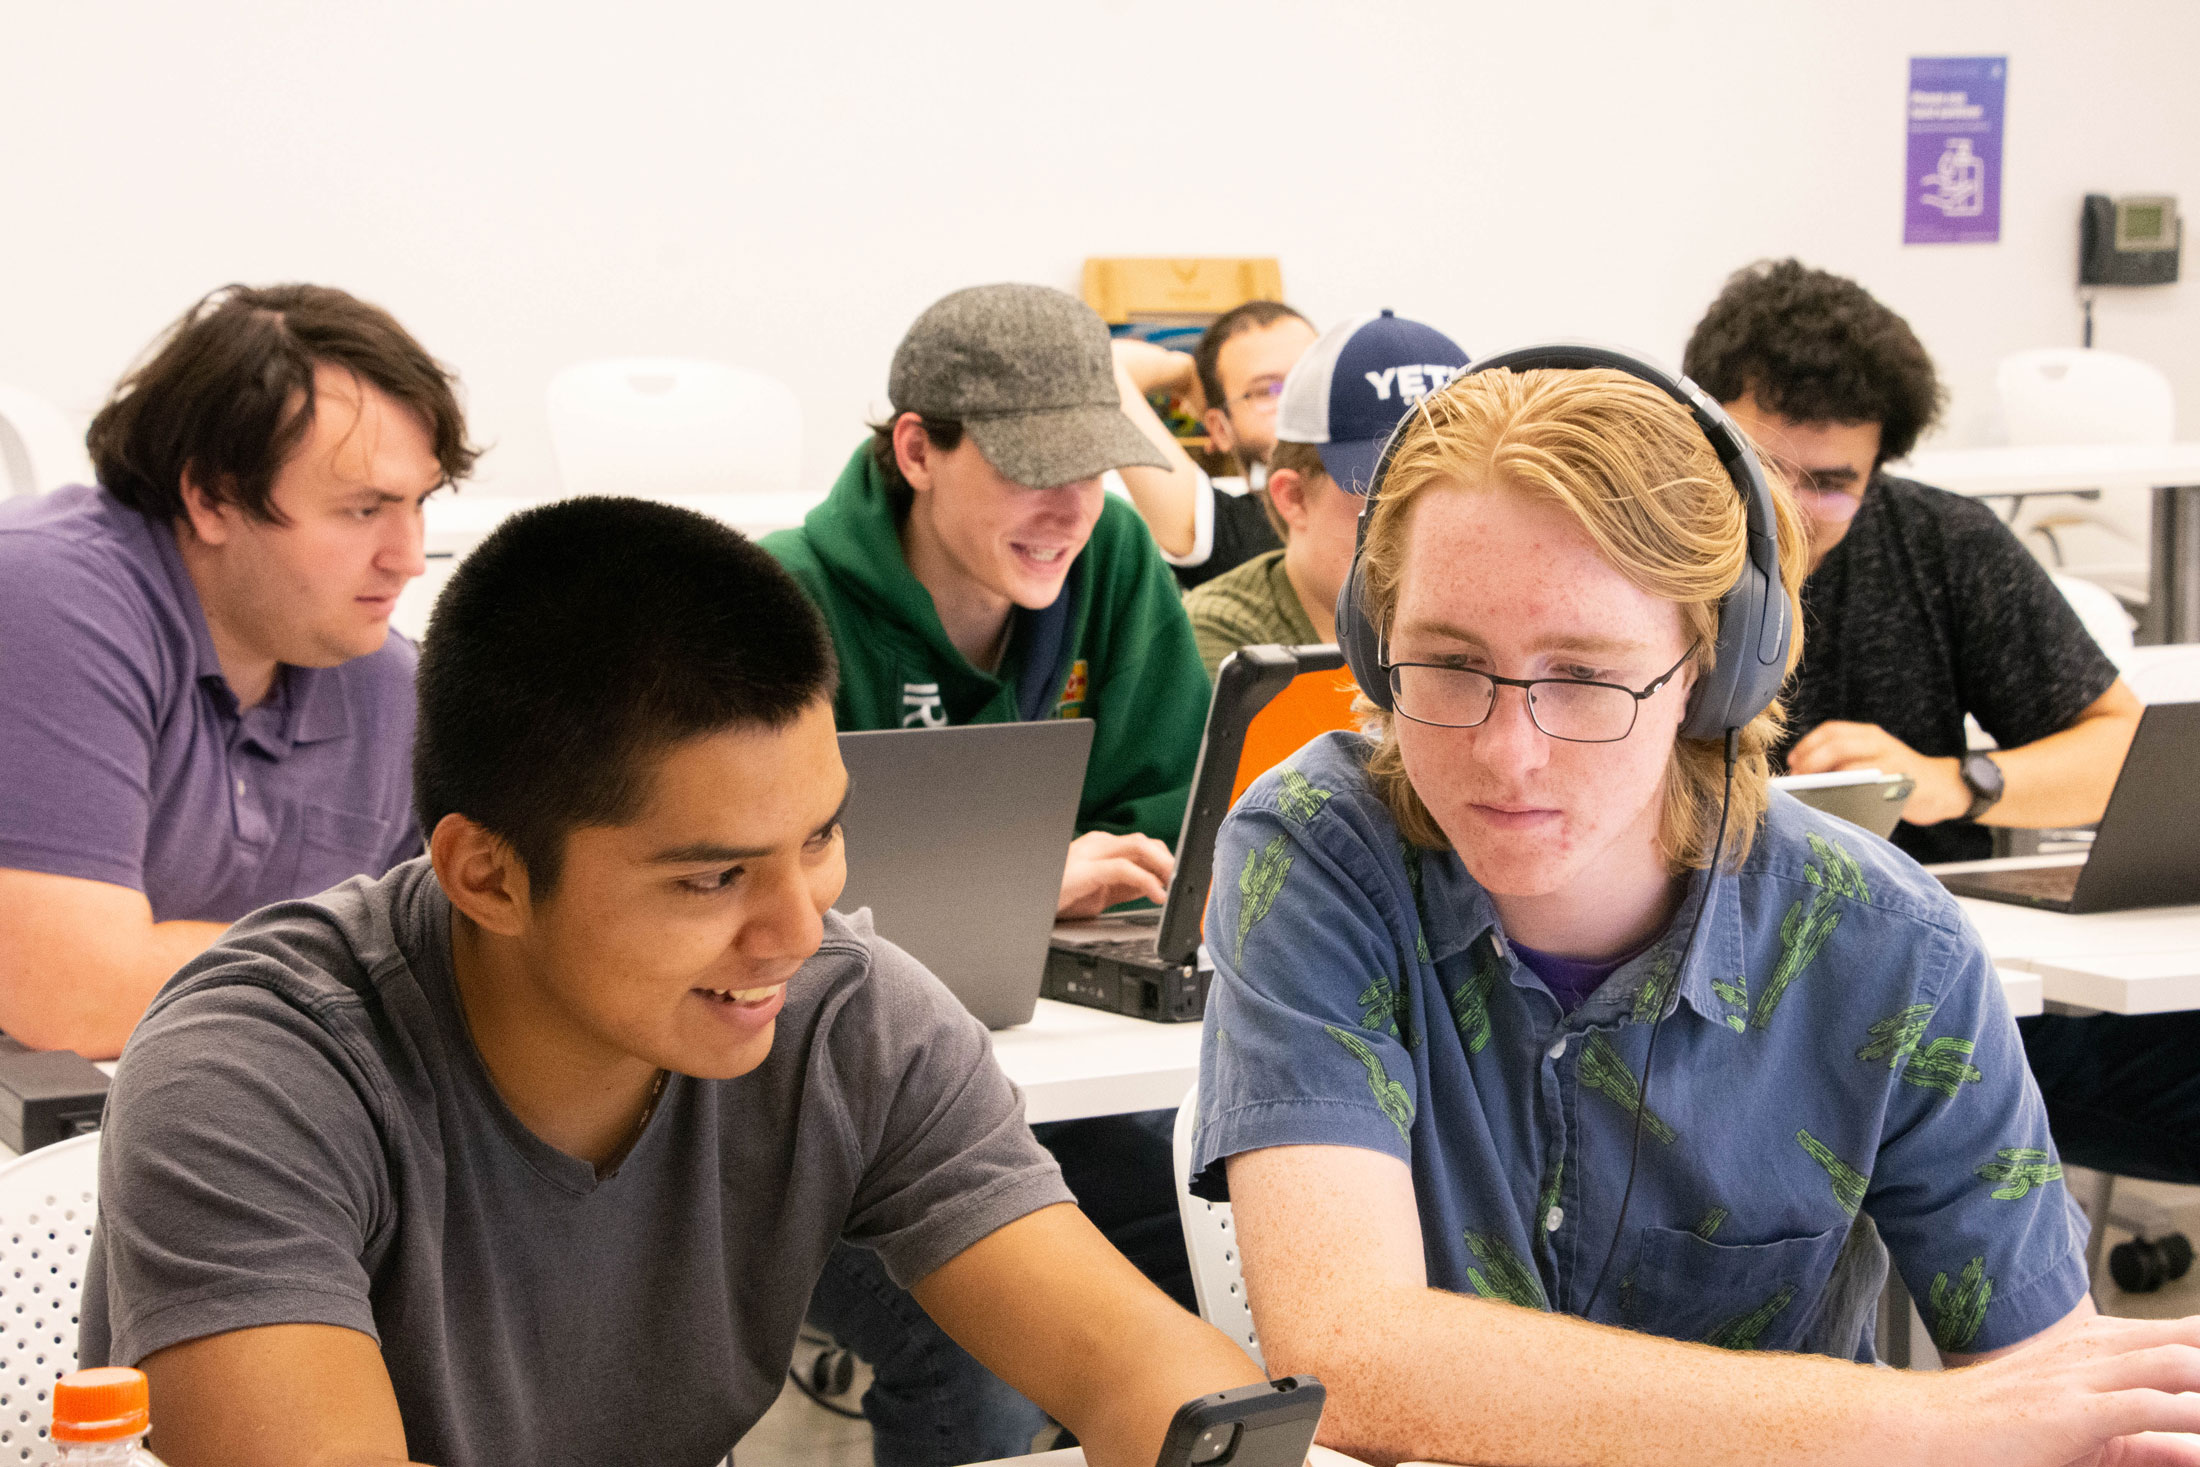 Cybersecurity Club combines enhanced digital learning with social fun